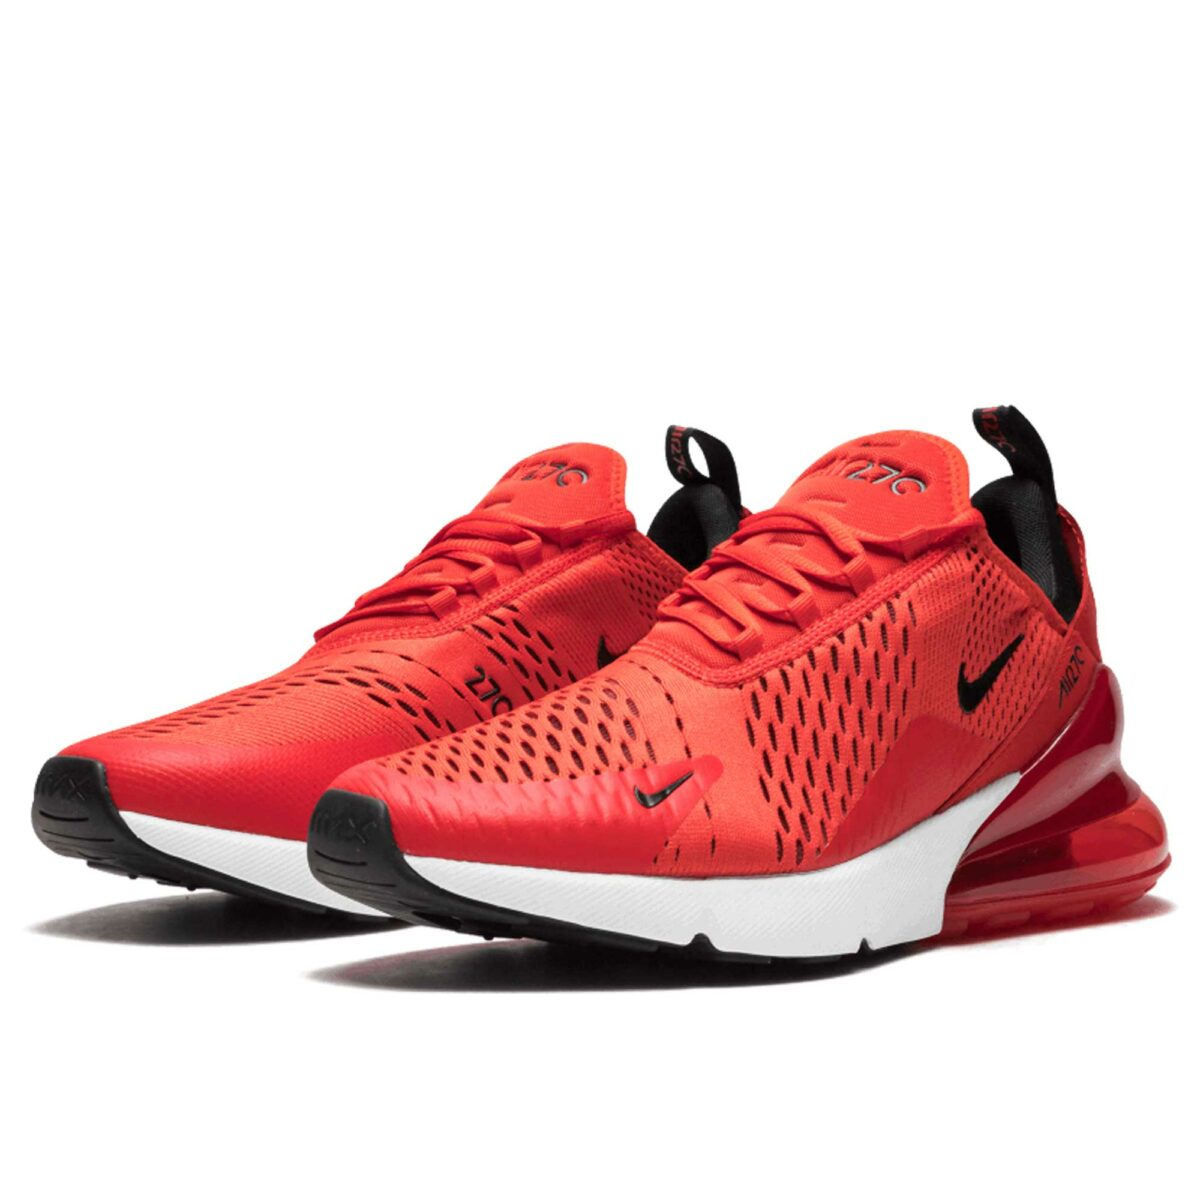 nike air max 270 red white AH8050_601 купить